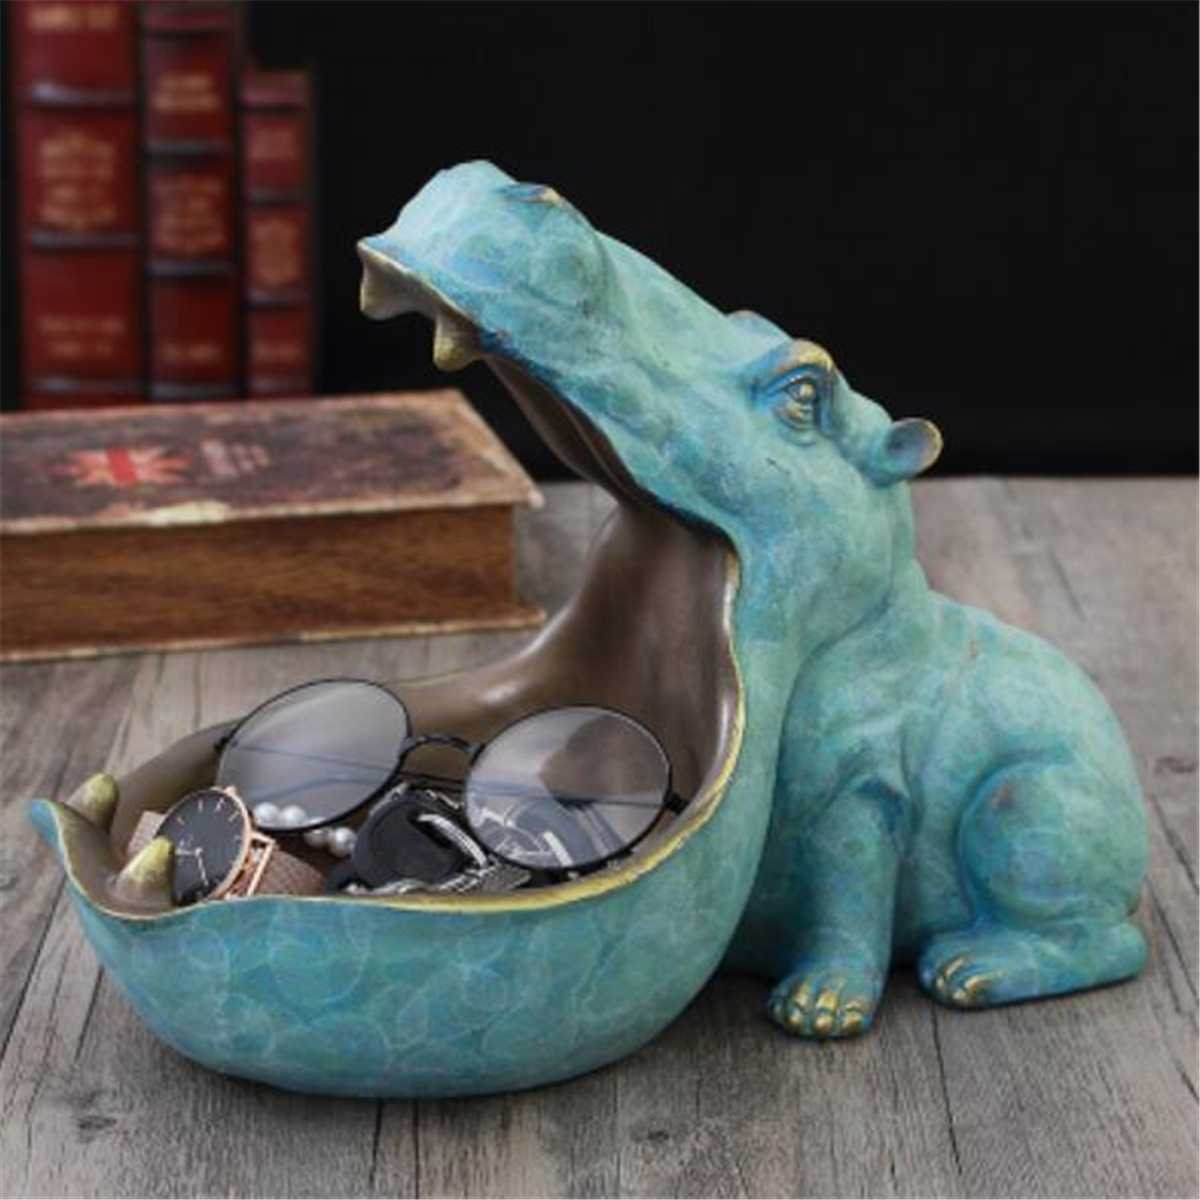 Vintage Hippopotamus Statue Decoration Resin Artware Sculpture Statue For Desk Decor Home Decoration Accessories Free Shipping